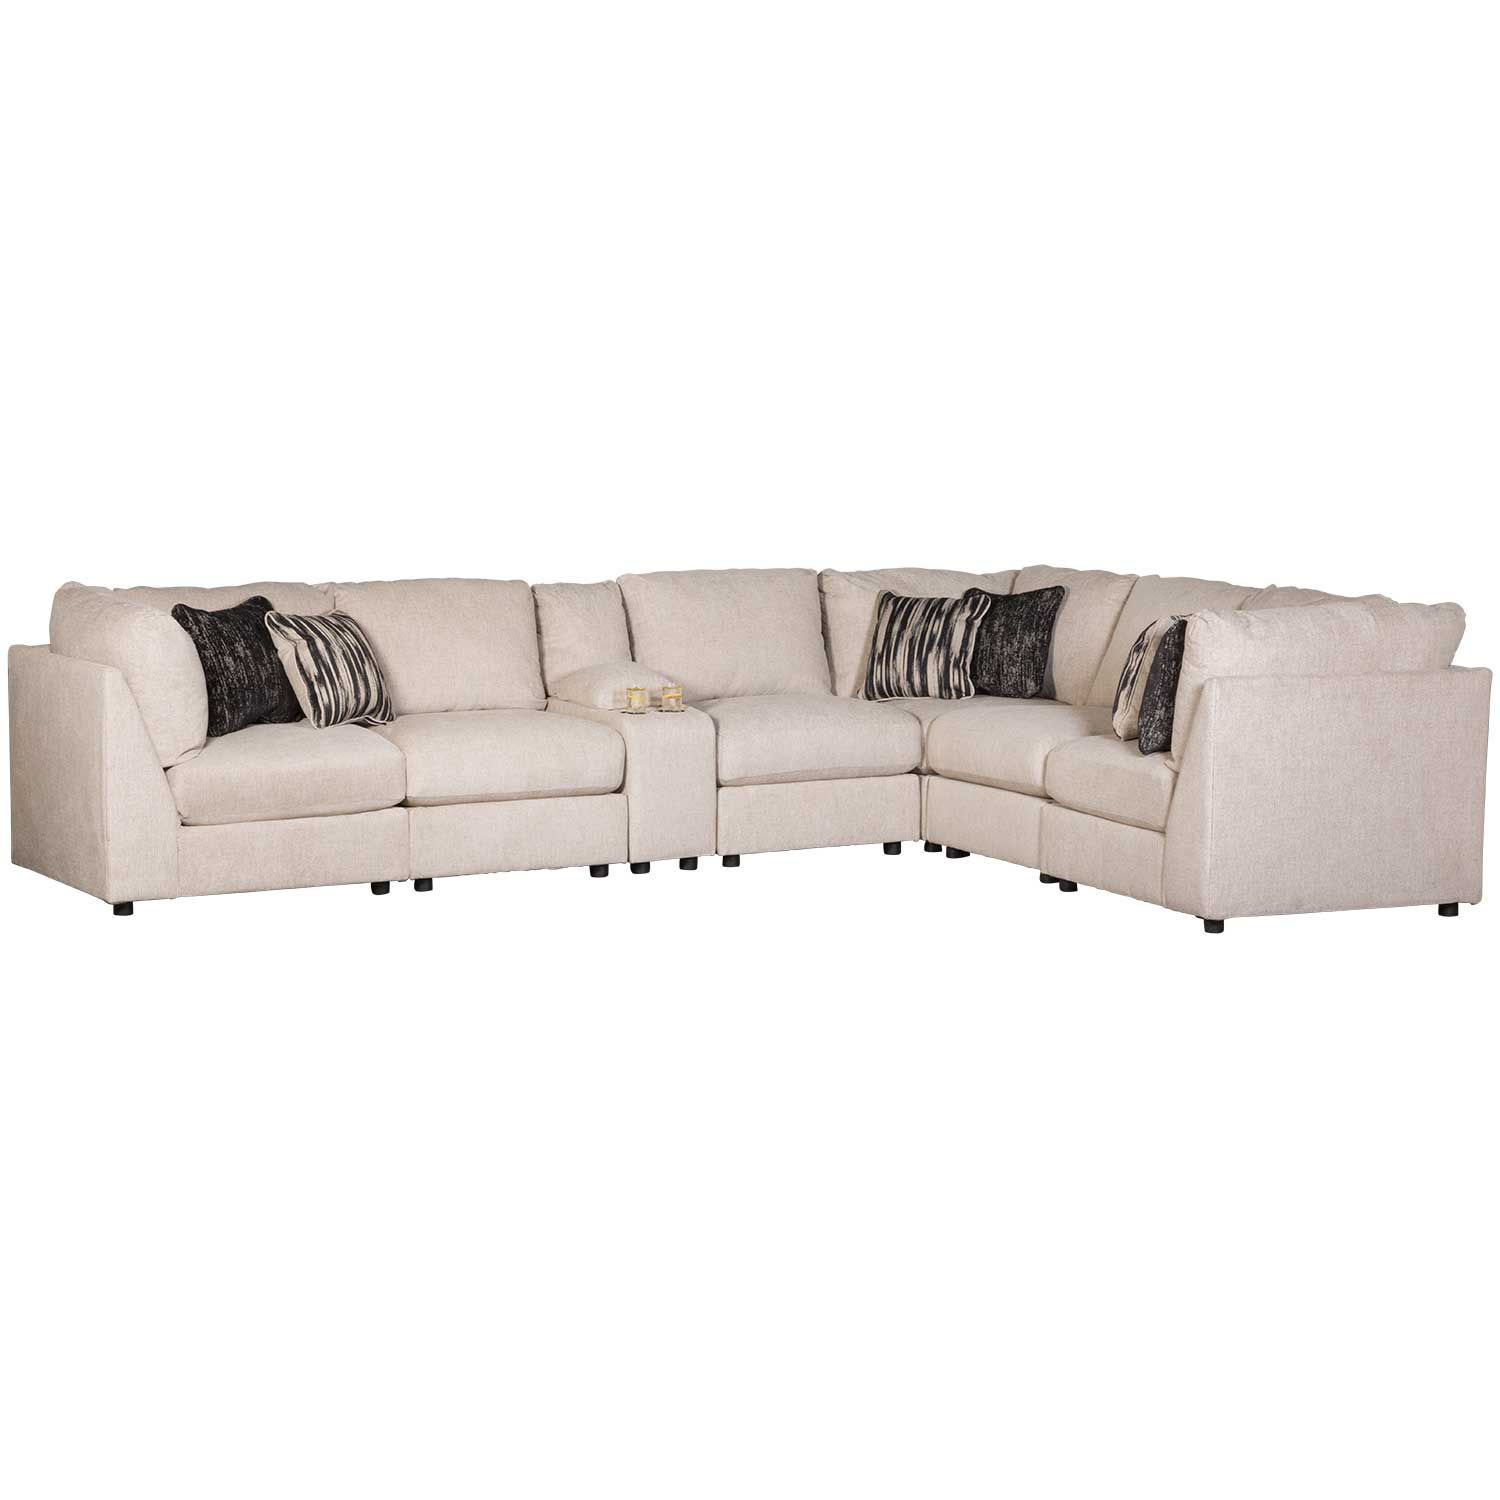 Picture of Kellway 7 Piece Sectional